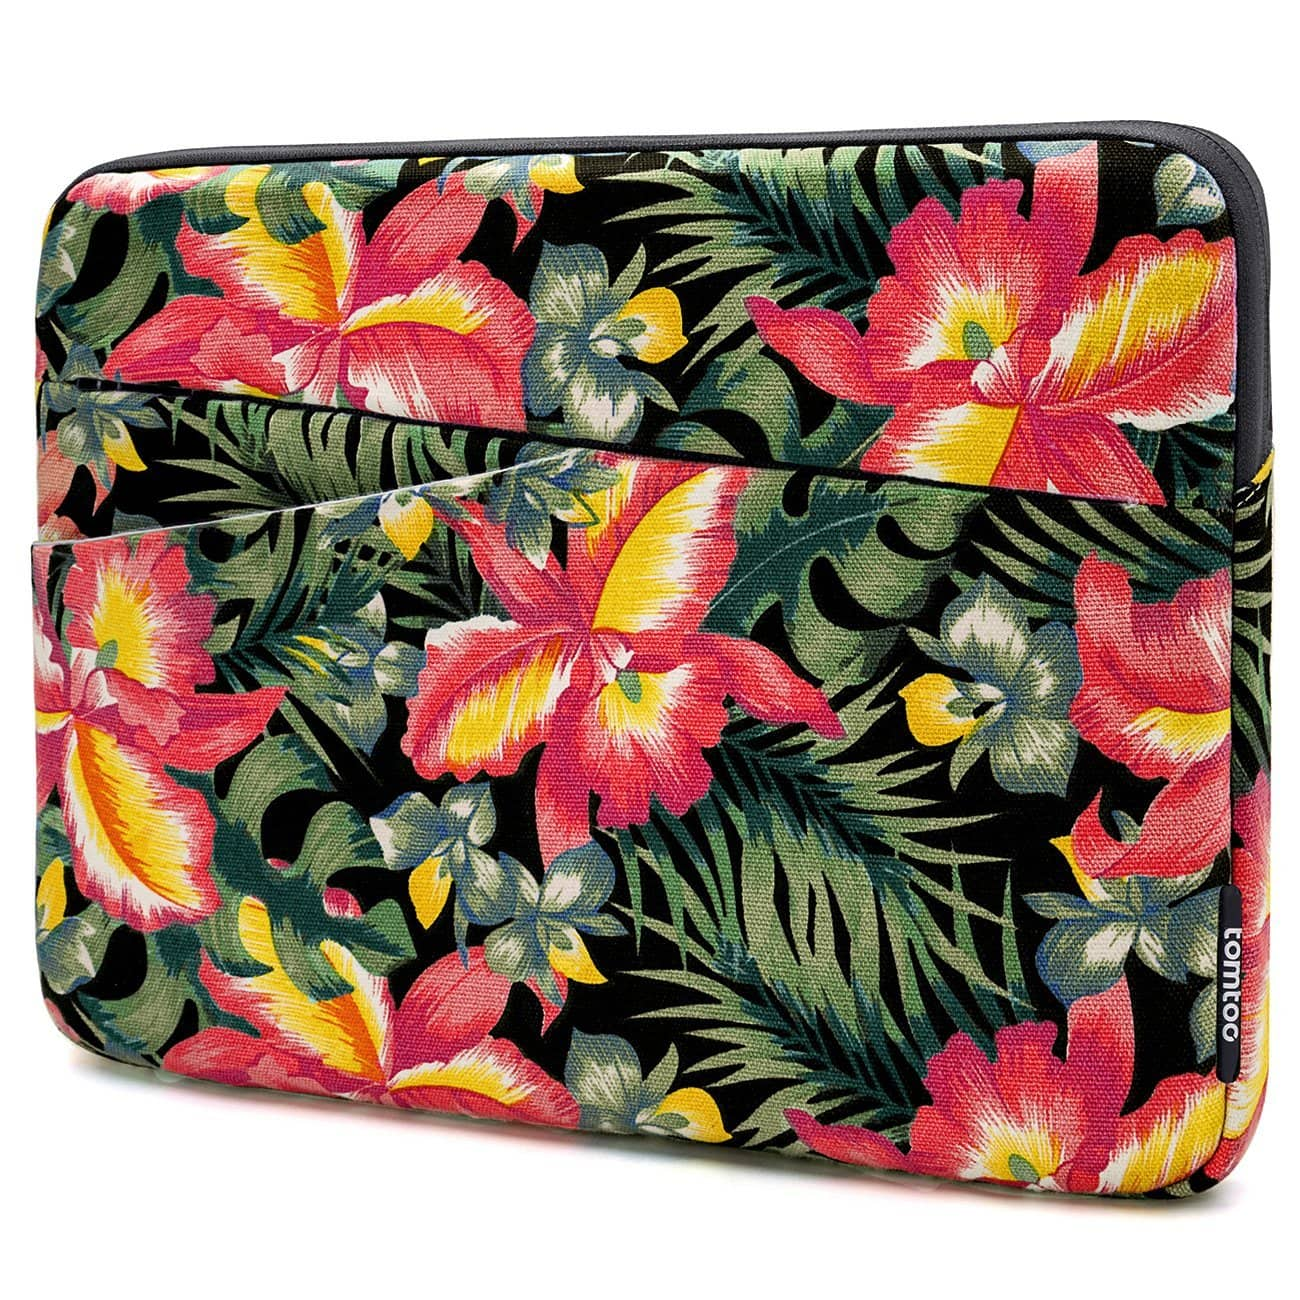 12-15 inch 360° Protective Laptop Sleeves multiple patterns $7.49-$10.99 a/c + free Prime shipping